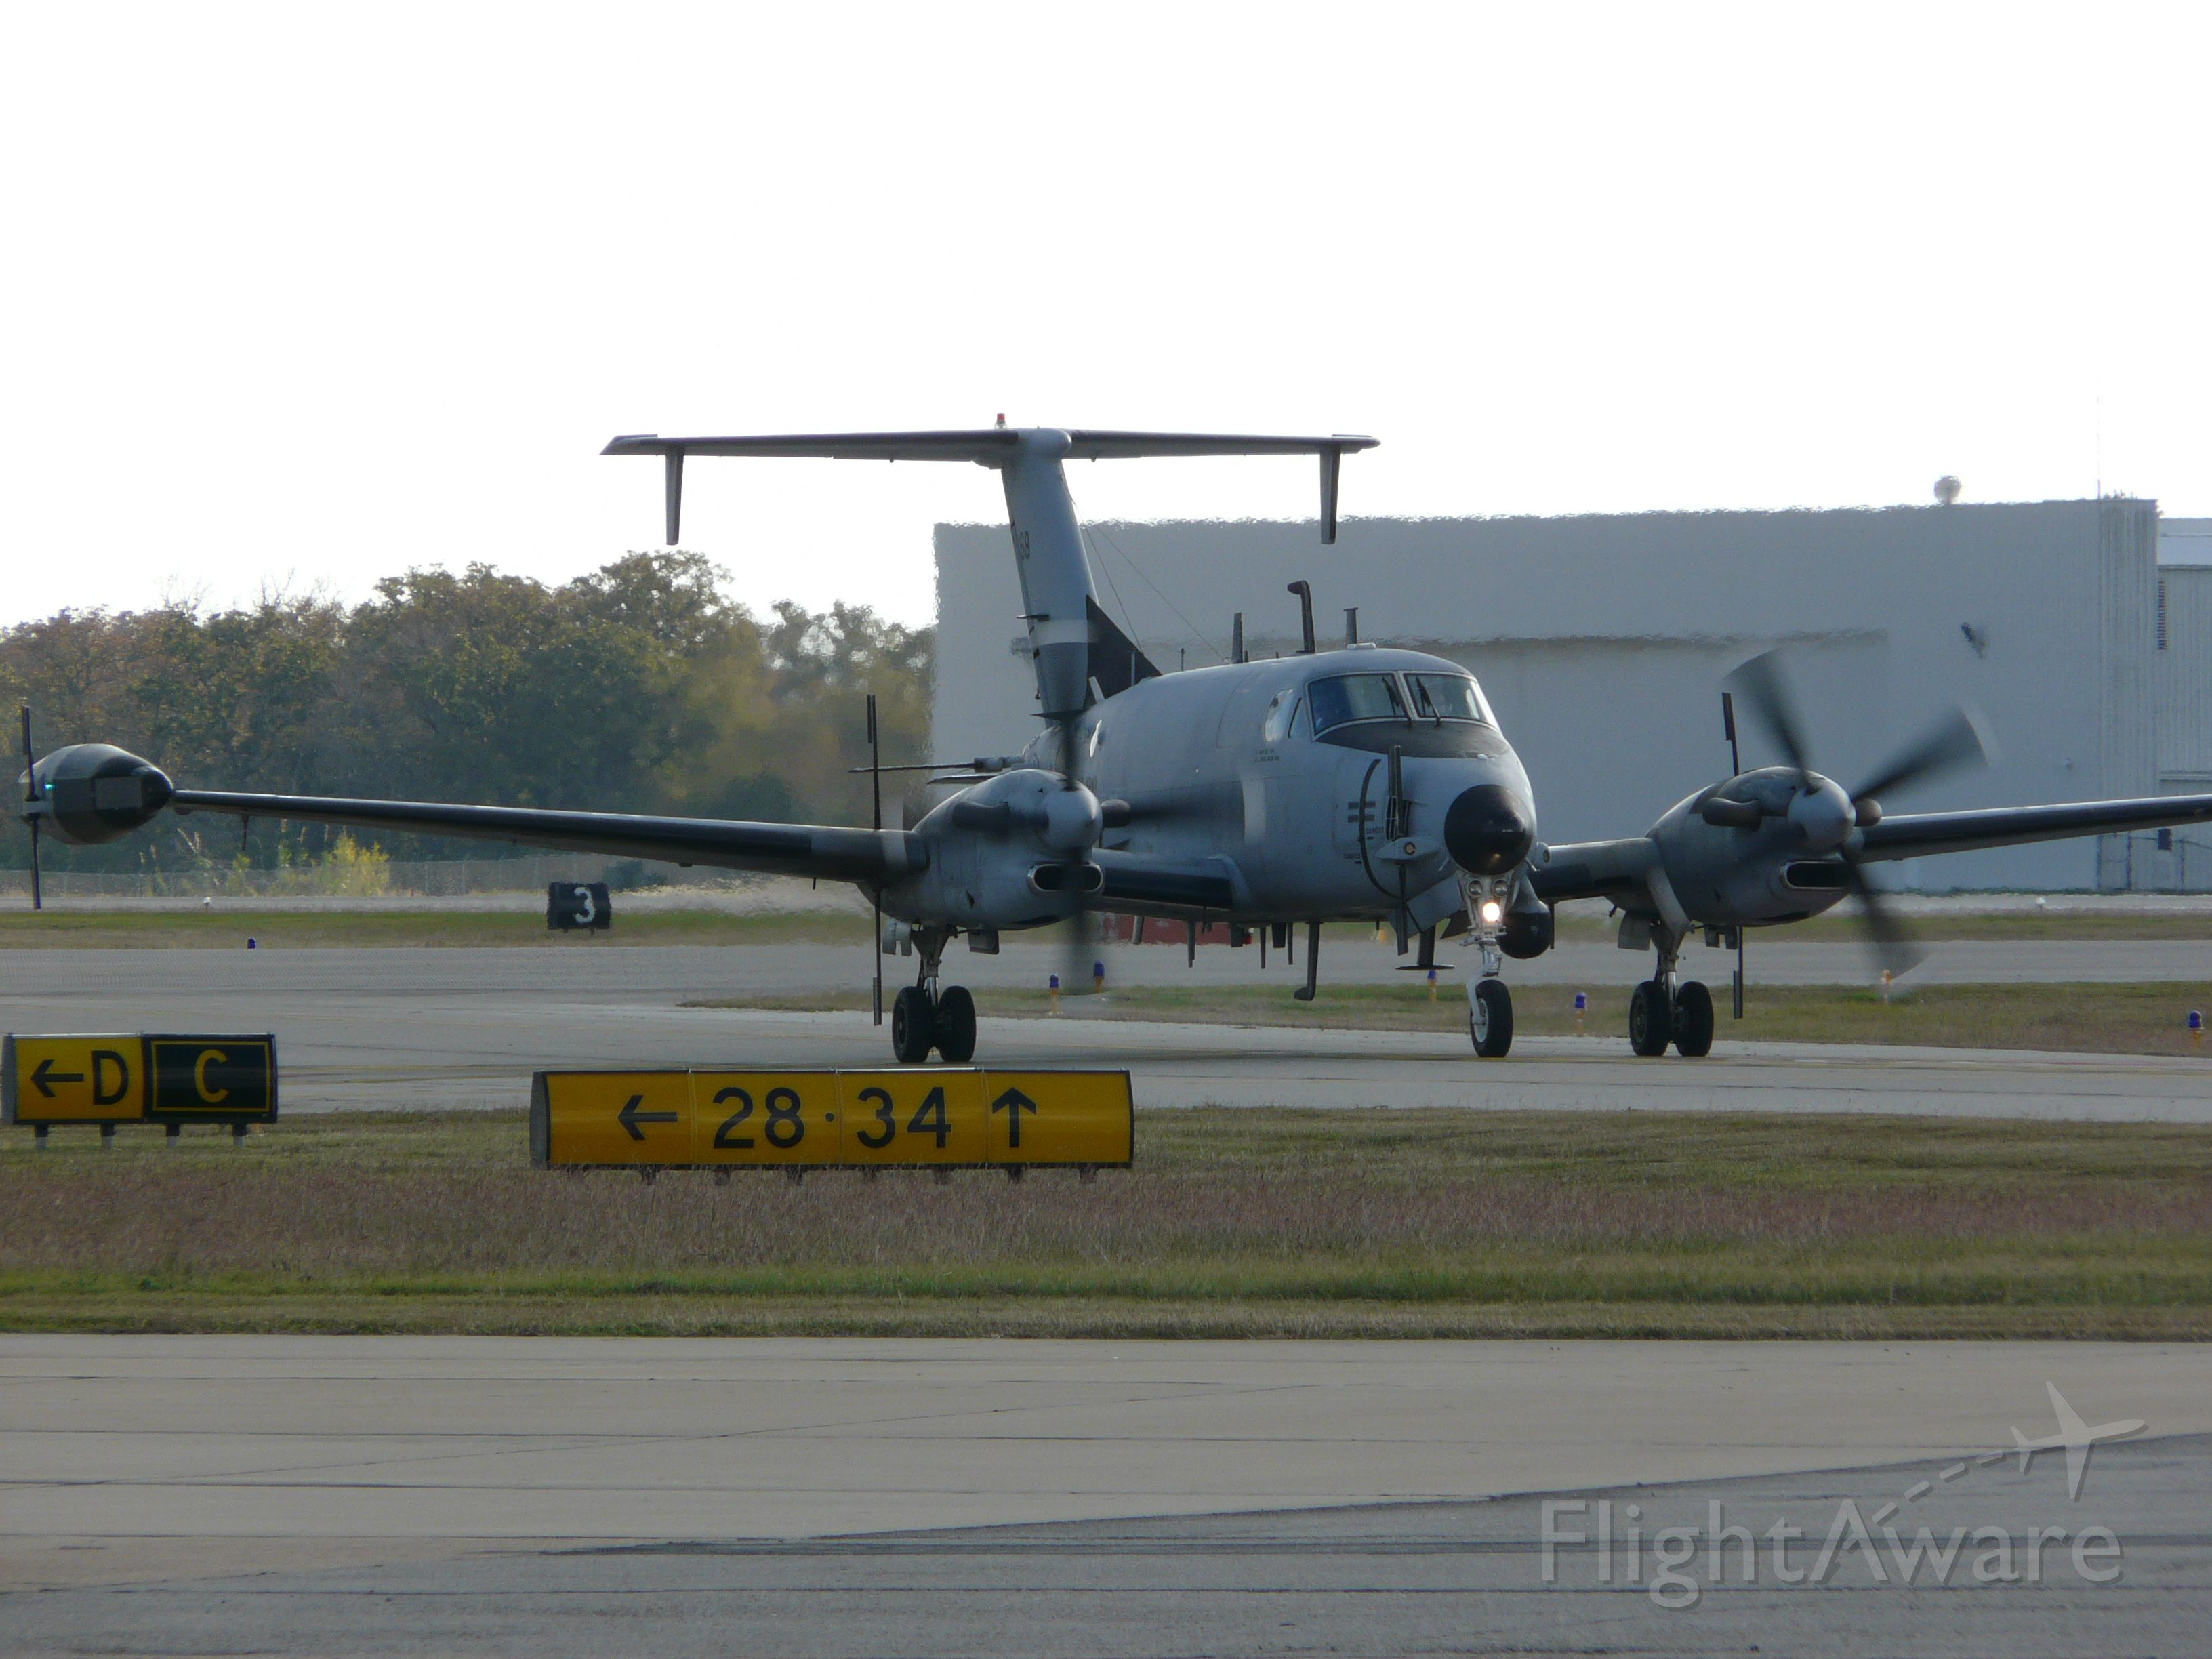 """— — - This RC-12 SIGNET aircraft was spotted at College Station, TX. Sorry for the poor shot but here's the link to the info: <a rel=""""nofollow"""" href=""""http://defensetech.org/2011/02/08/first-rc-12x-sigint-spy-planes-making-their-way-downrange/"""">http://defensetech.org/2011/02/08/first-rc-12x-sigint-spy-planes-making-their-way-downrange/</a>"""